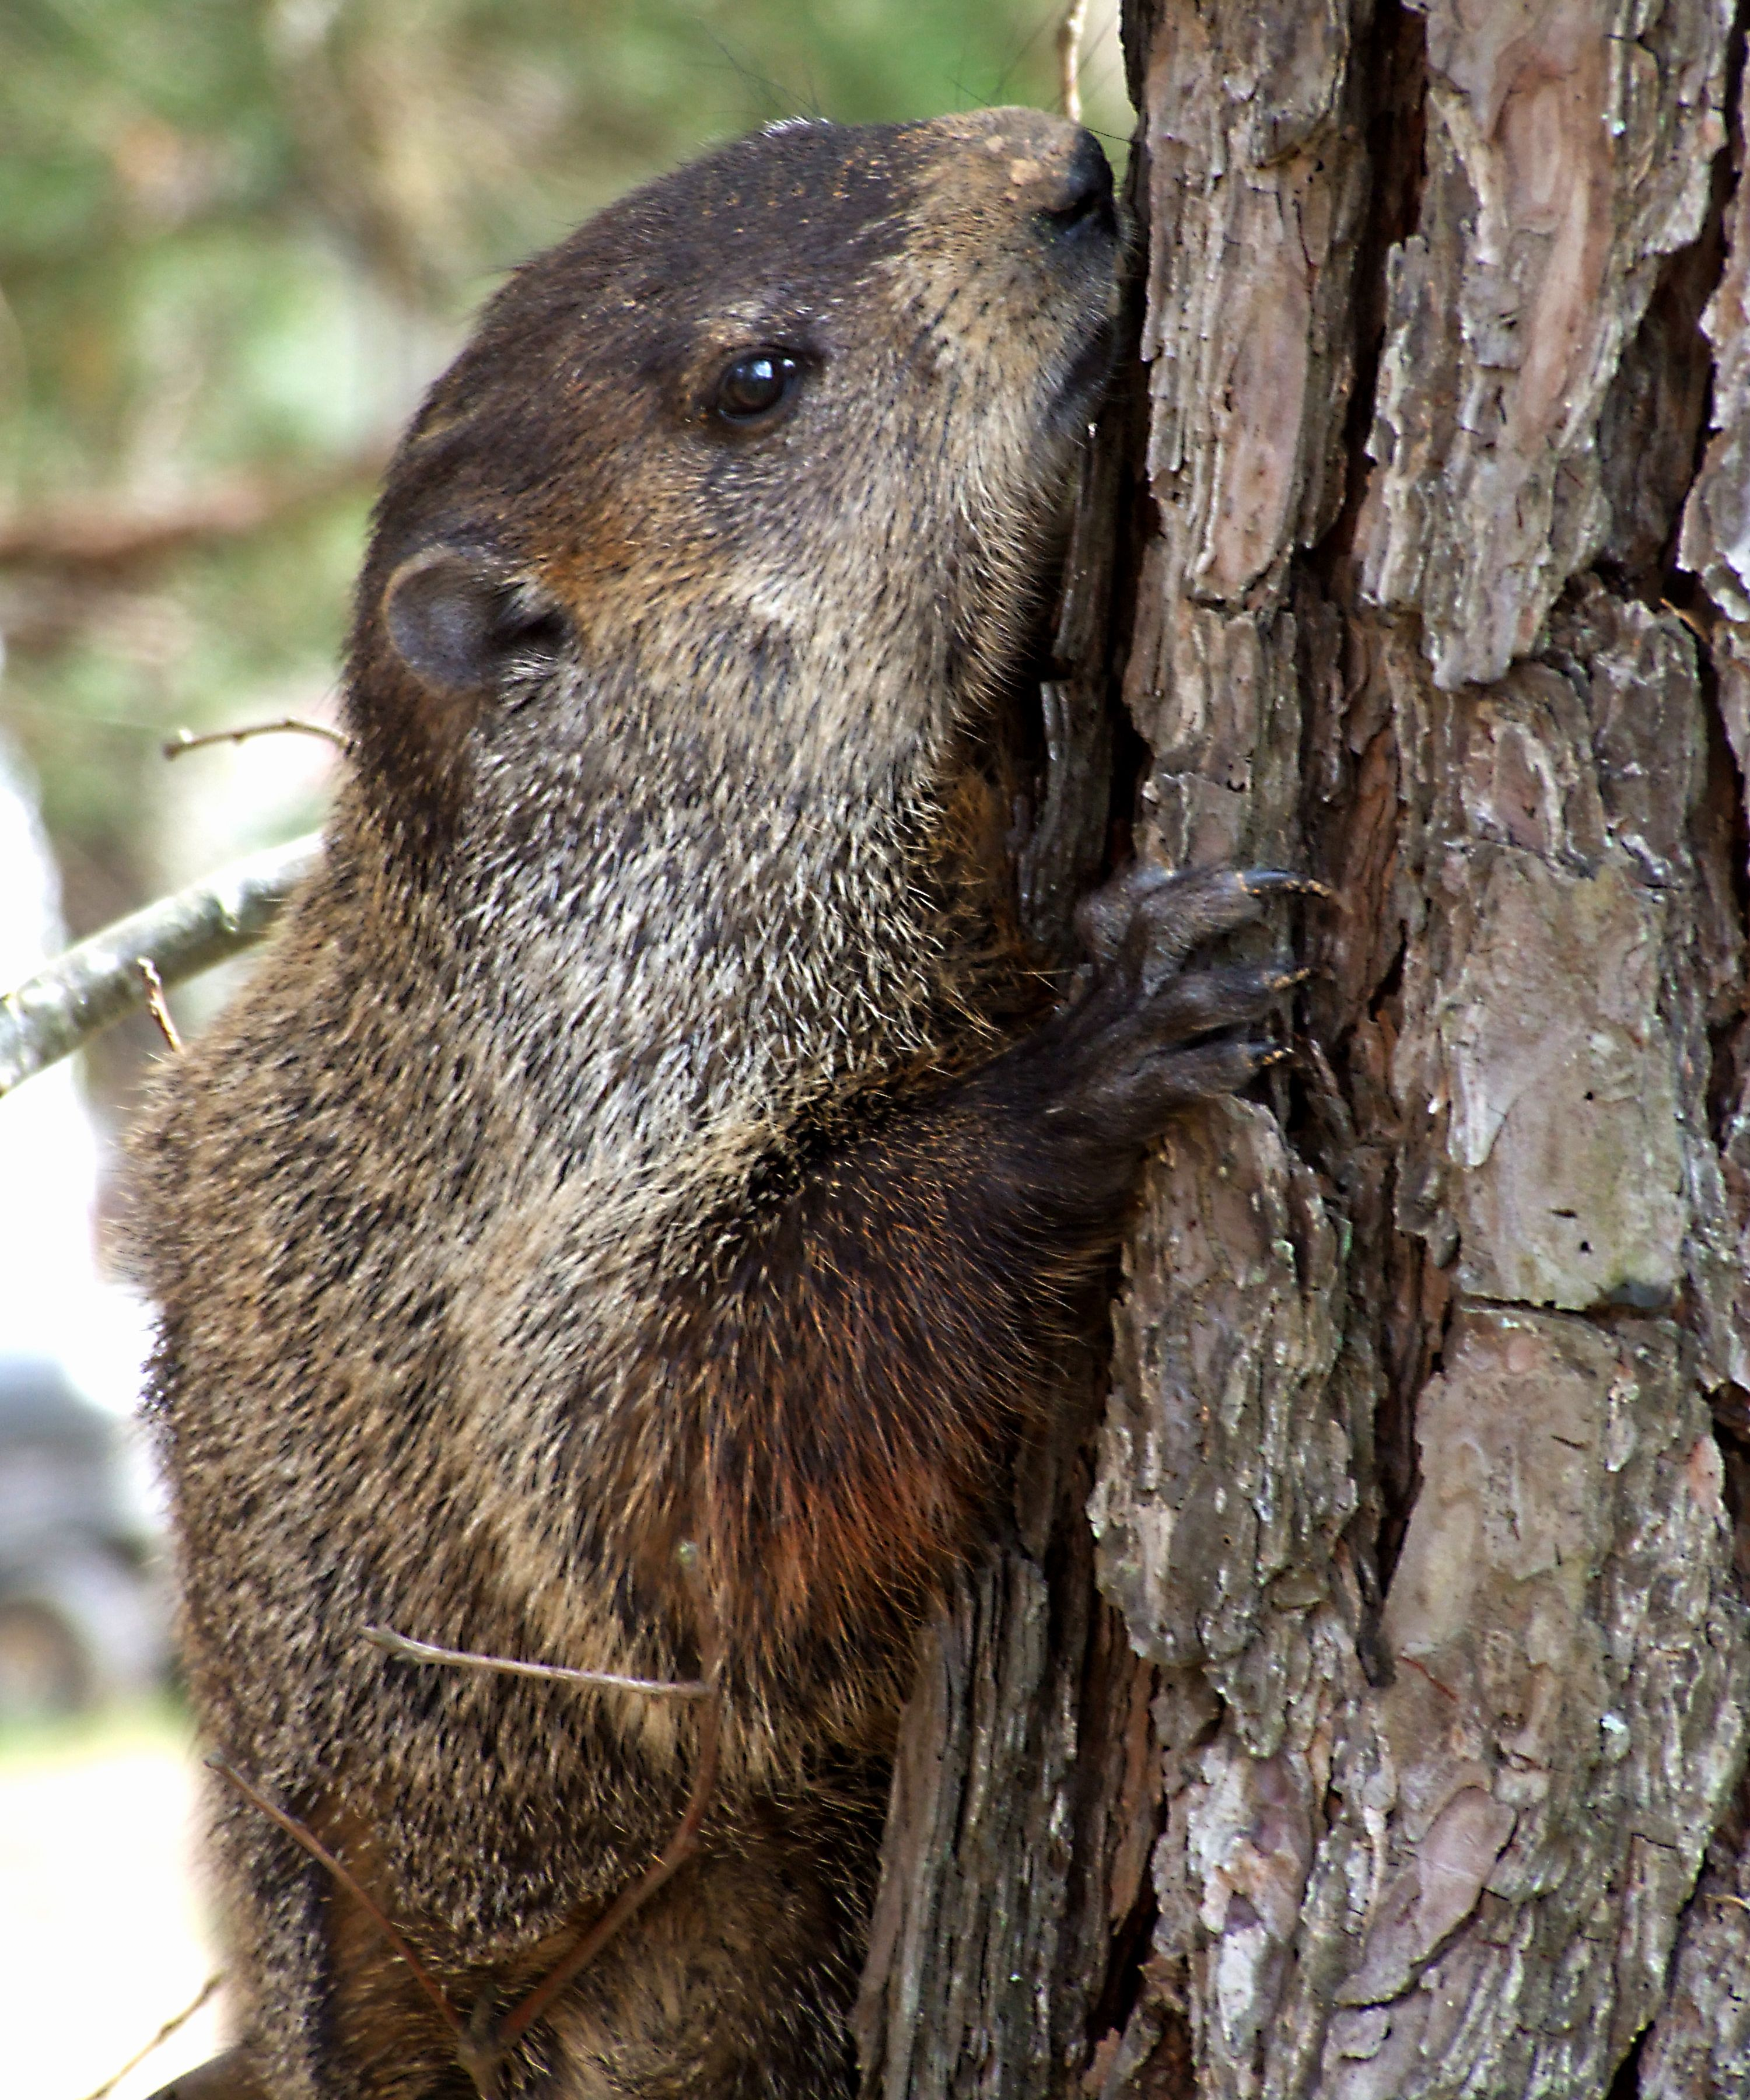 We had a ground hog in the yard recently. He stuck his